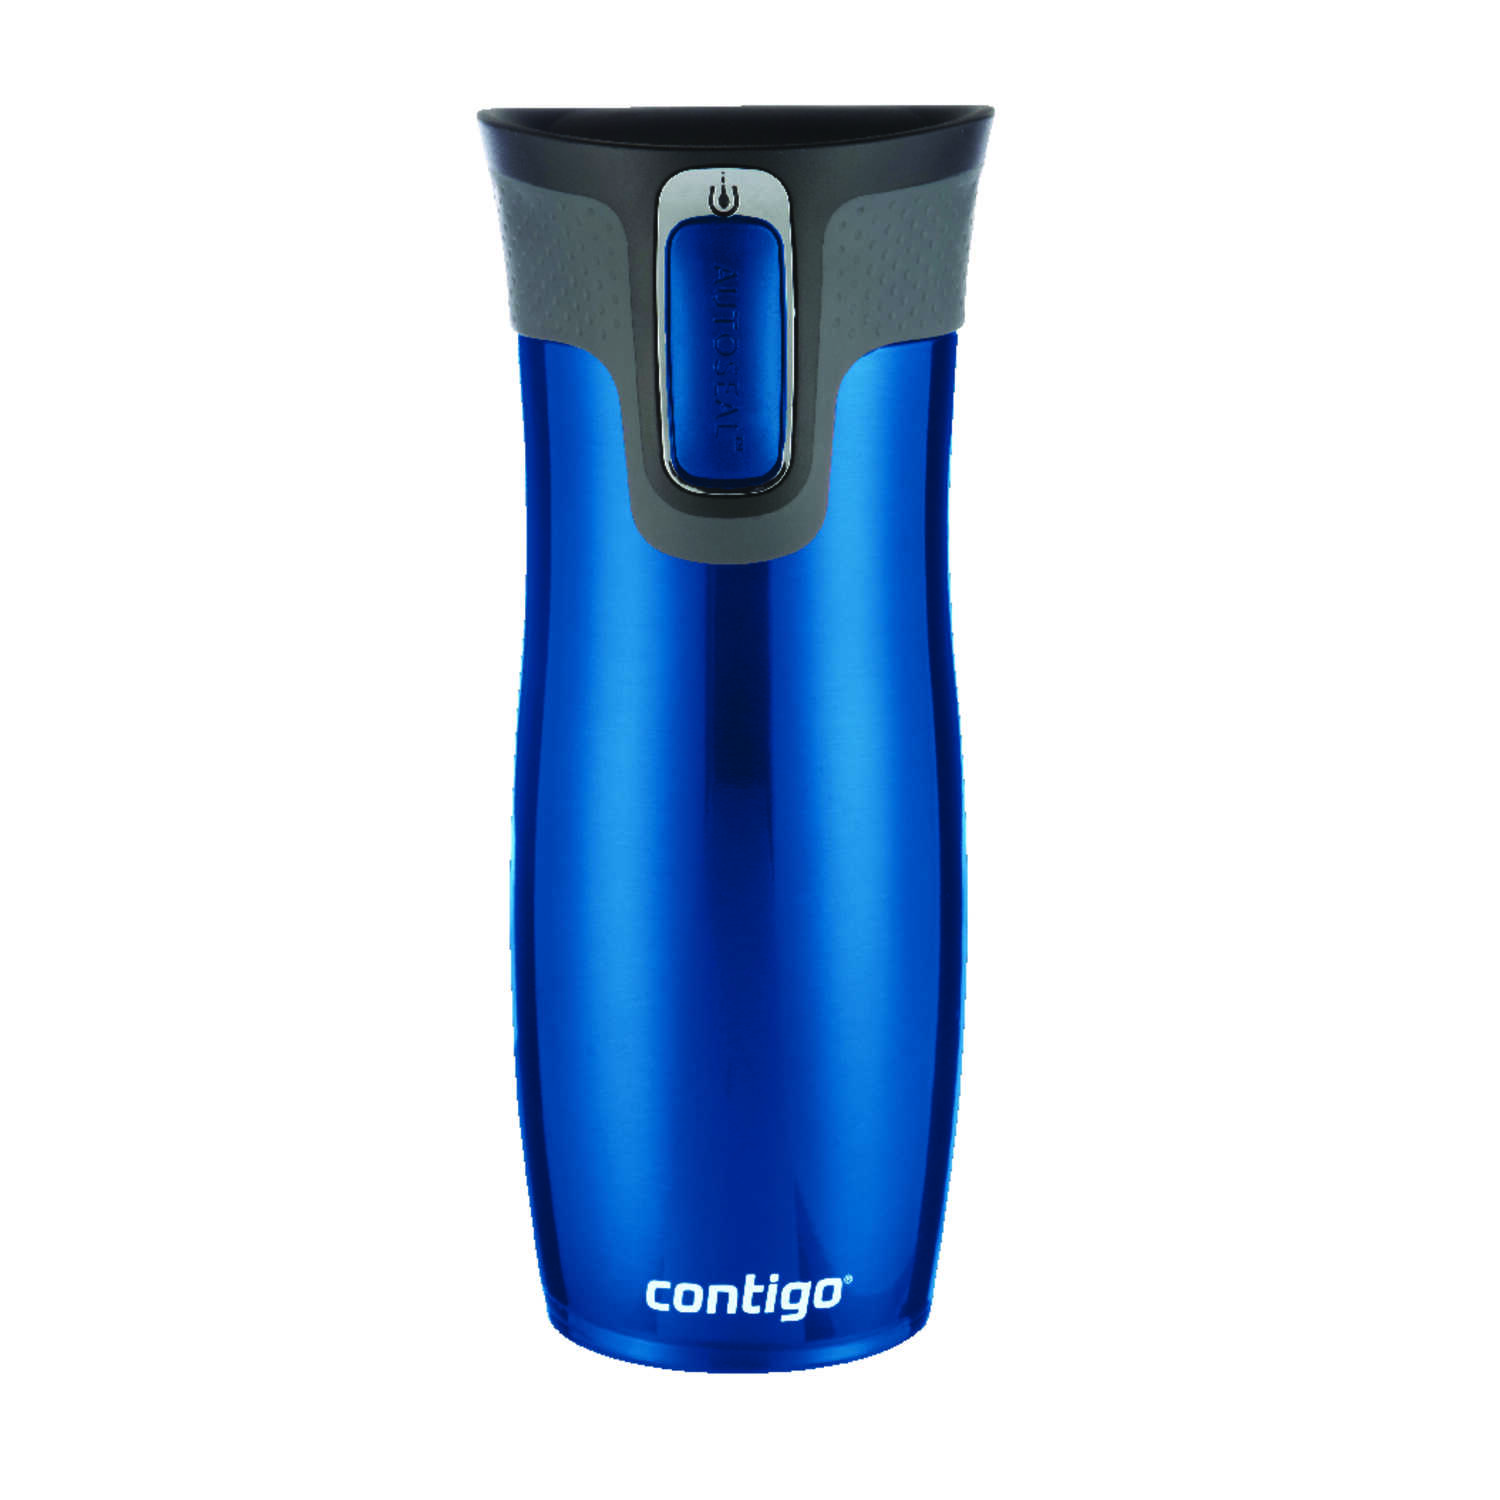 Contigo  Monaco  Stainless Steel  Autoseal West Loop  Travel Mug  BPA Free 16 oz.